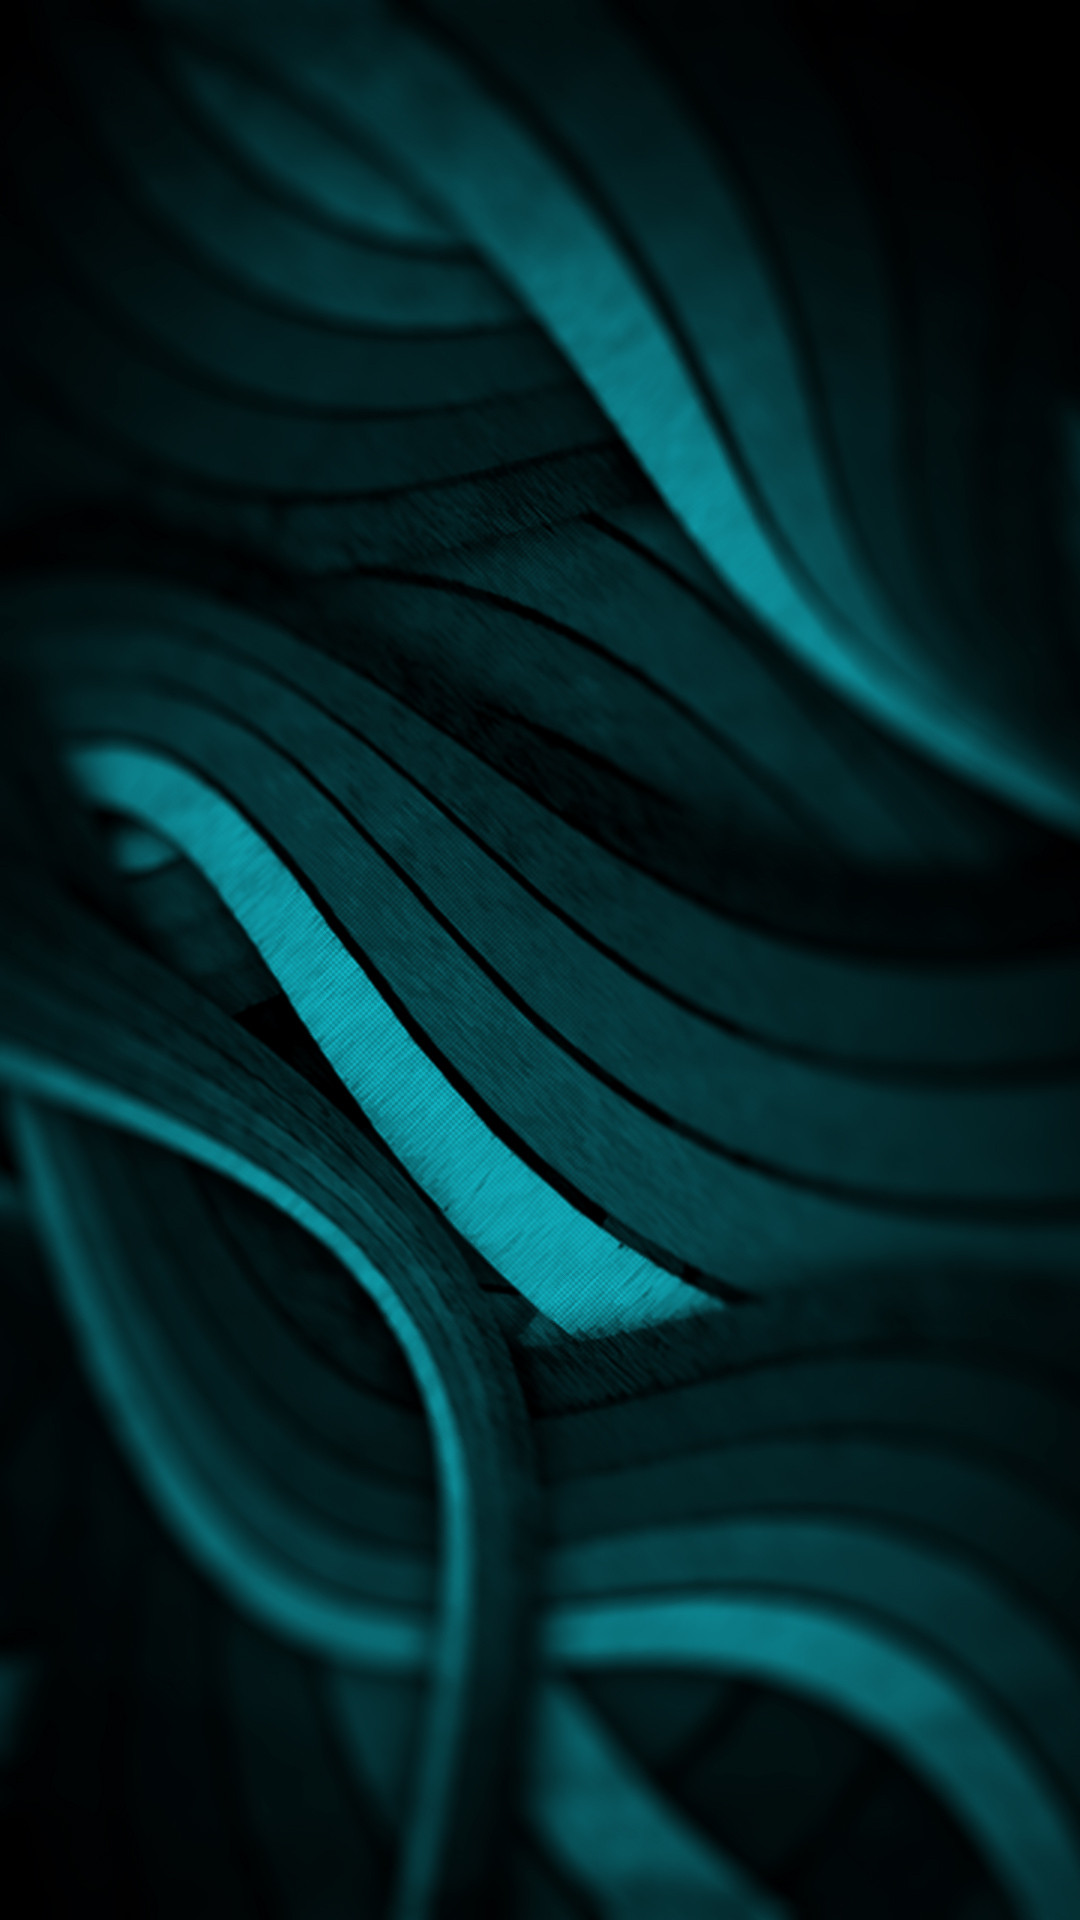 Best Android Wallpaper 2019 Samsung Galaxy Note 3 Wallpapers Abstract And Blue Android Wallpapers